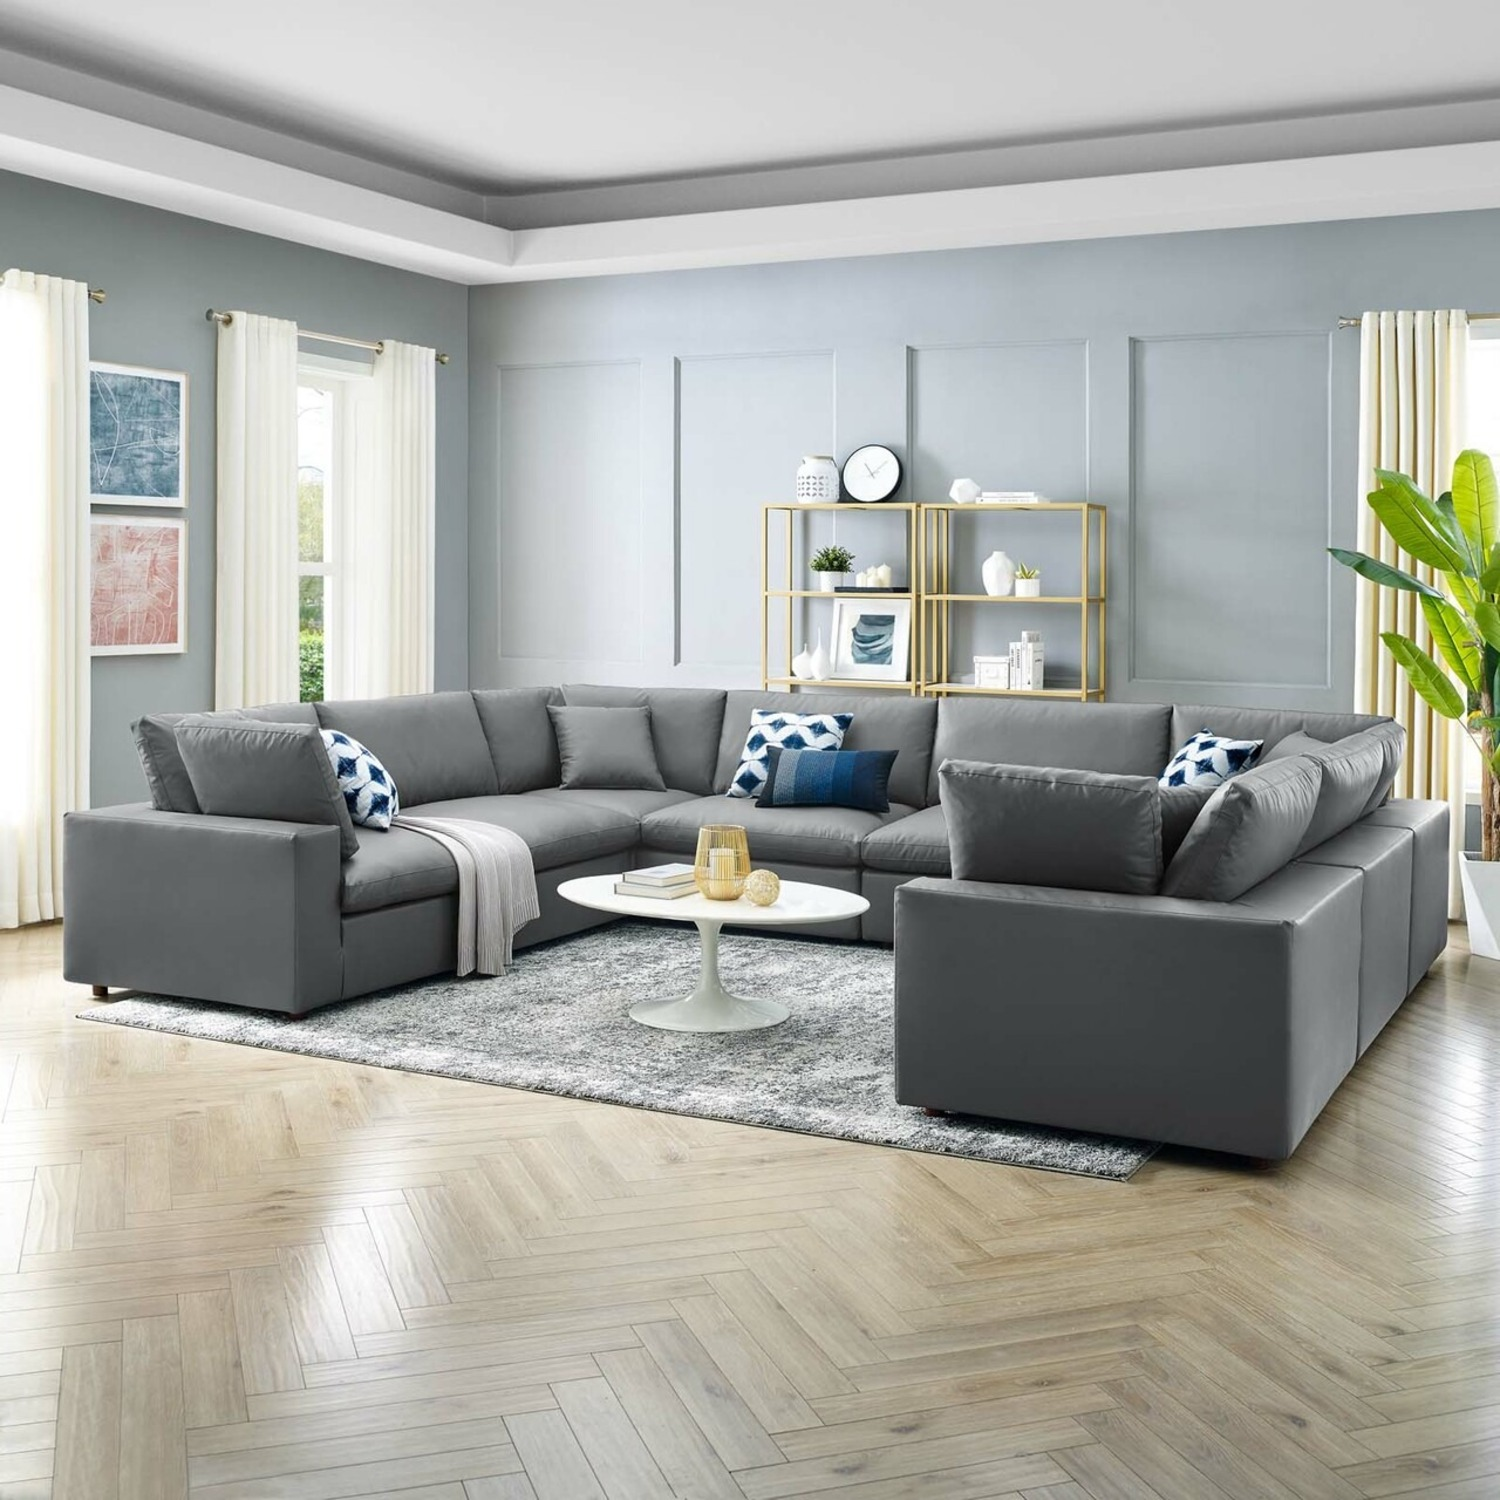 8-Piece Sectional Sofa In Gray Vegan Leather - image-9